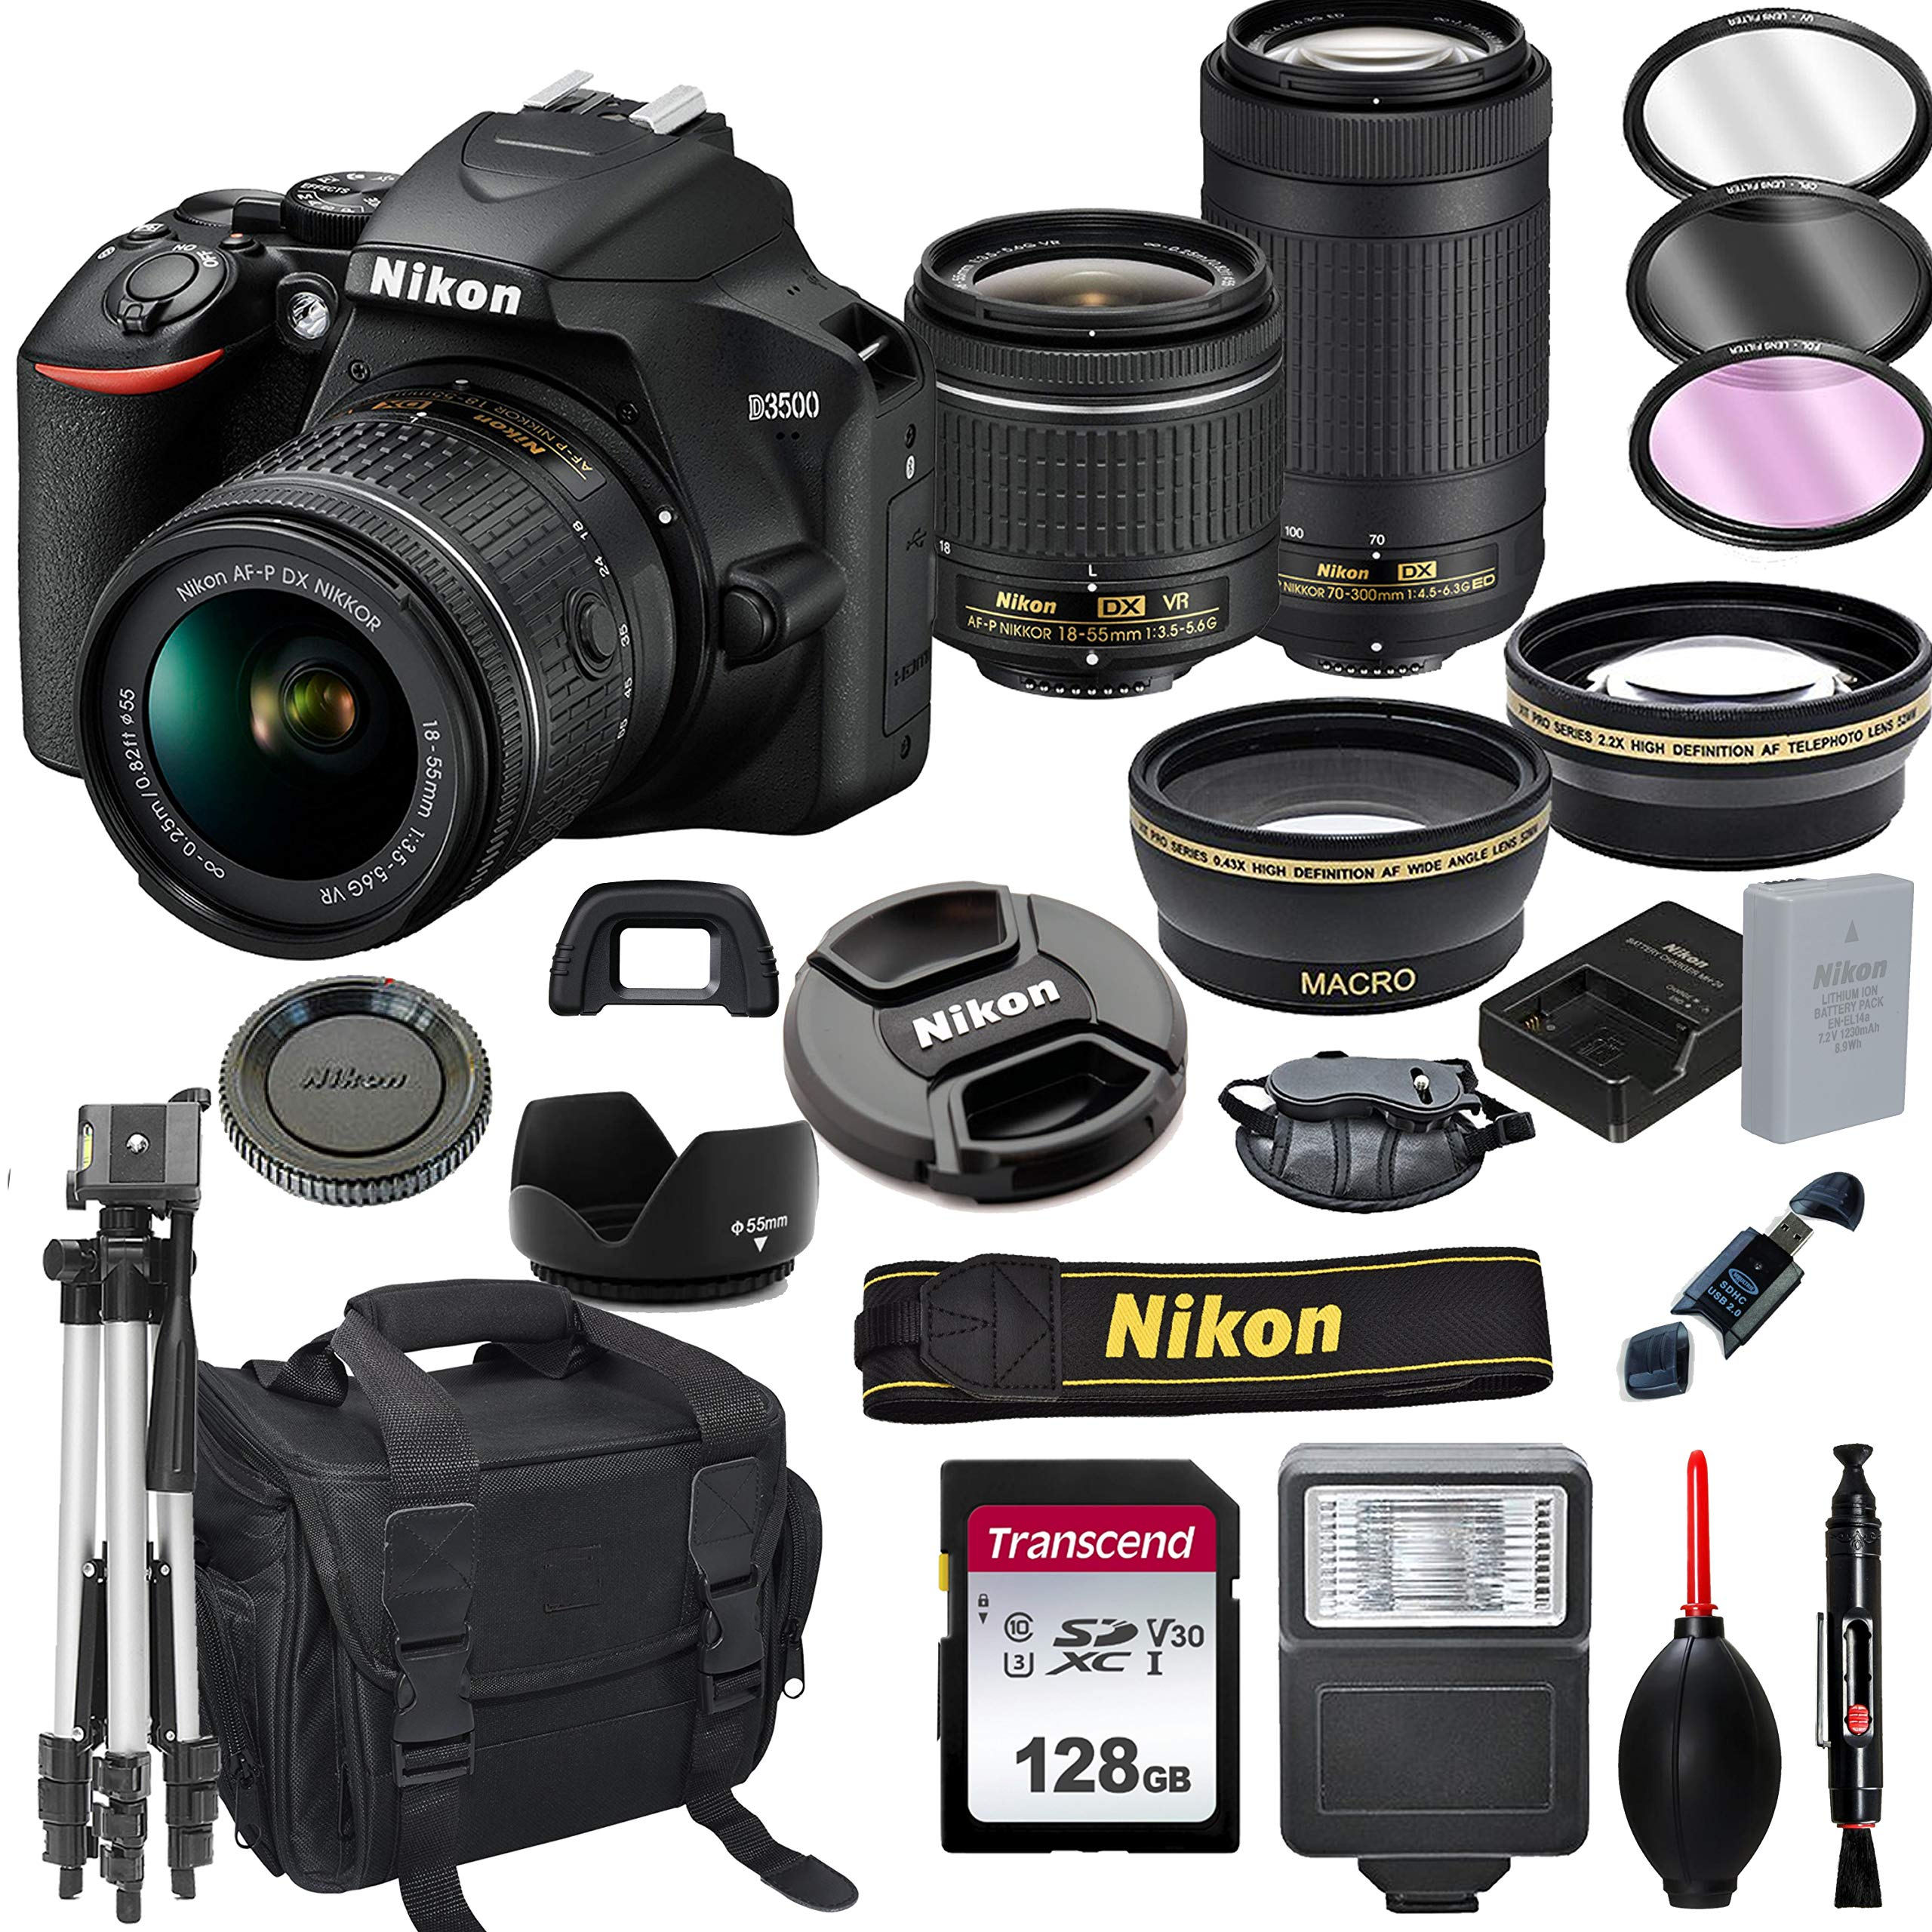 nikon-d3500-dslr-camera-with-18-55mm-vr-and-70-300mm-lenses-128gb-card-tripod-flash-and-more-20pc-bundle